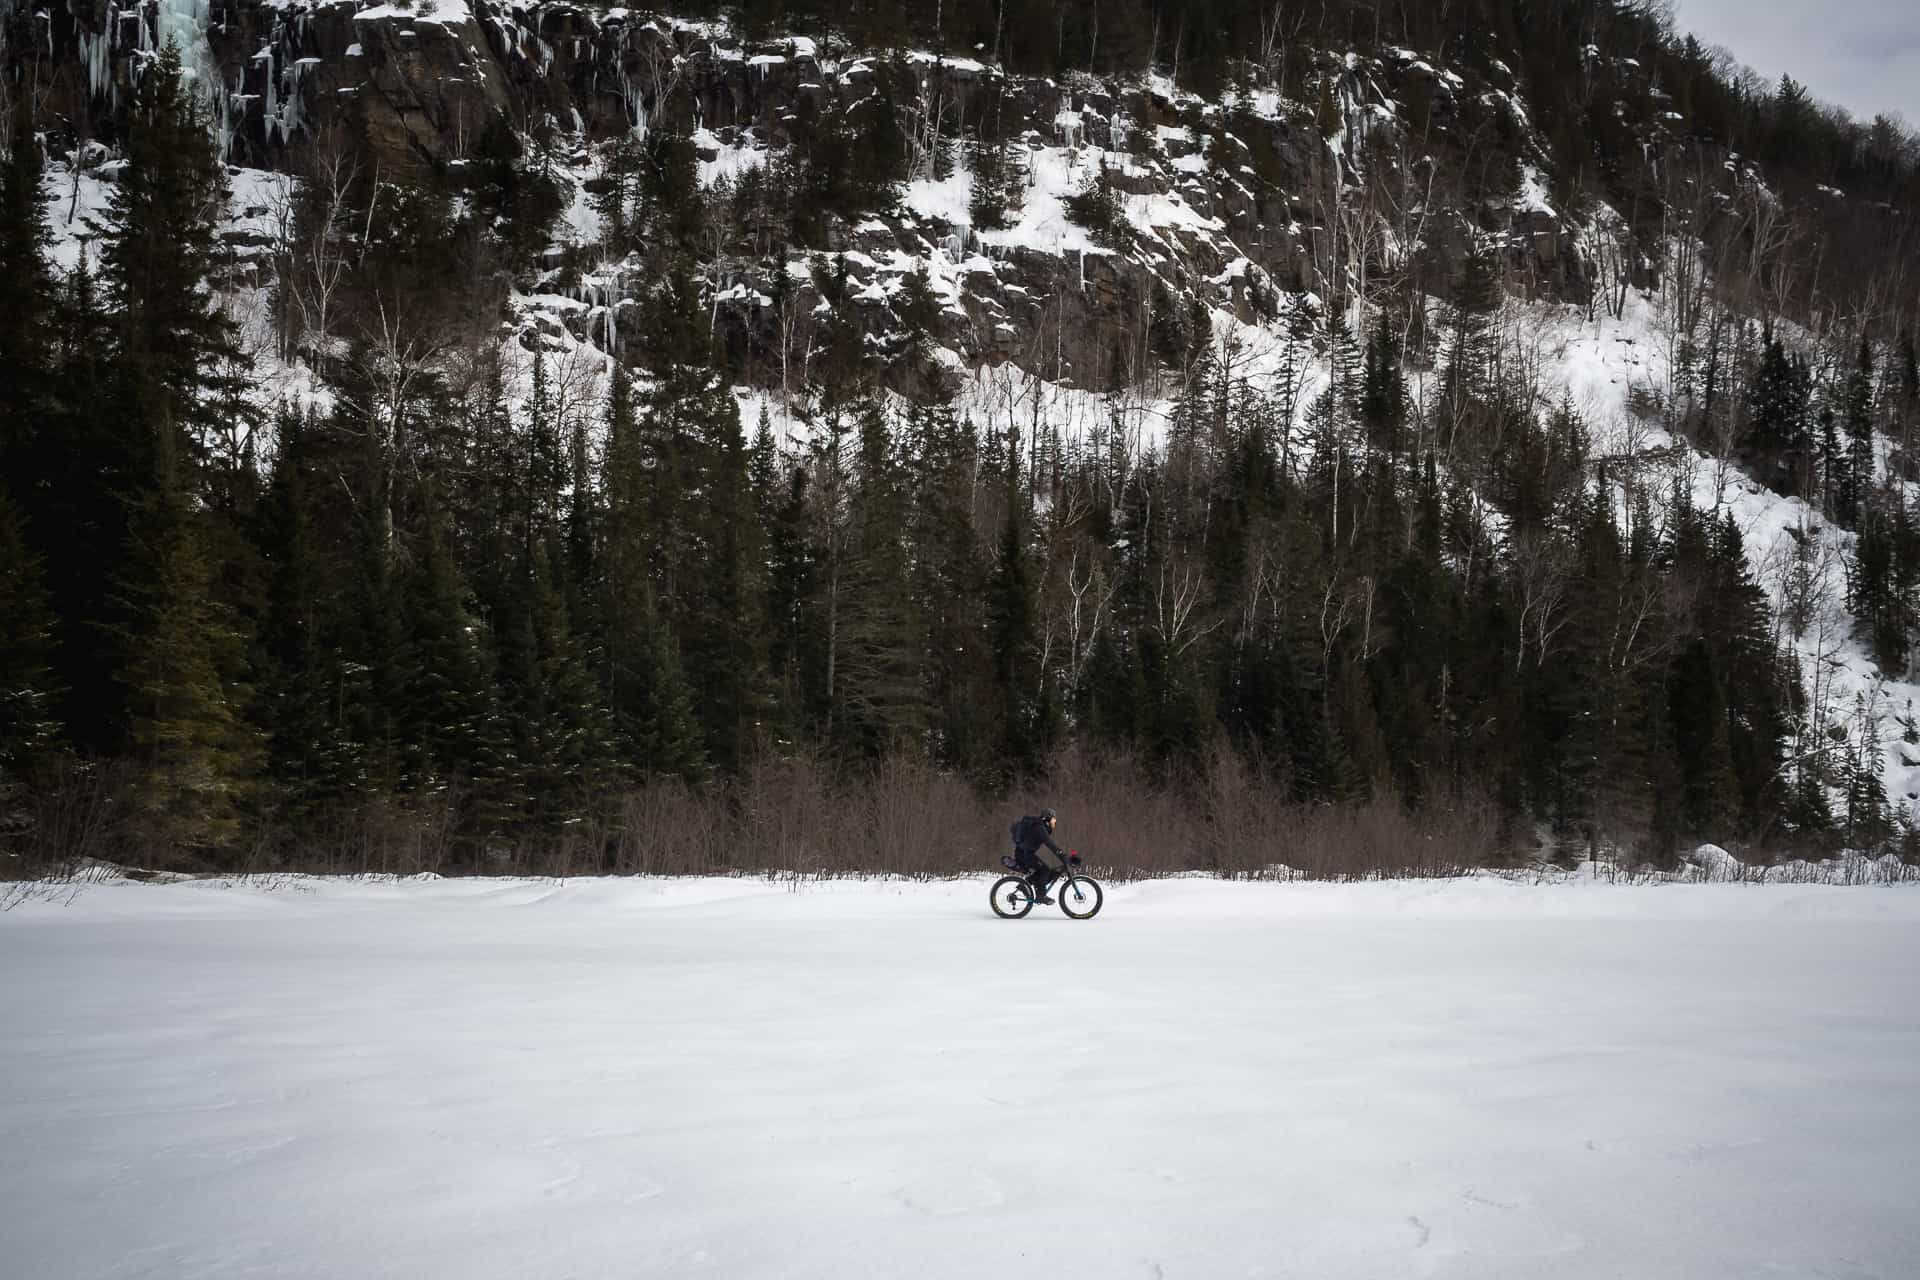 A man riding a fatbike on a frozen lake